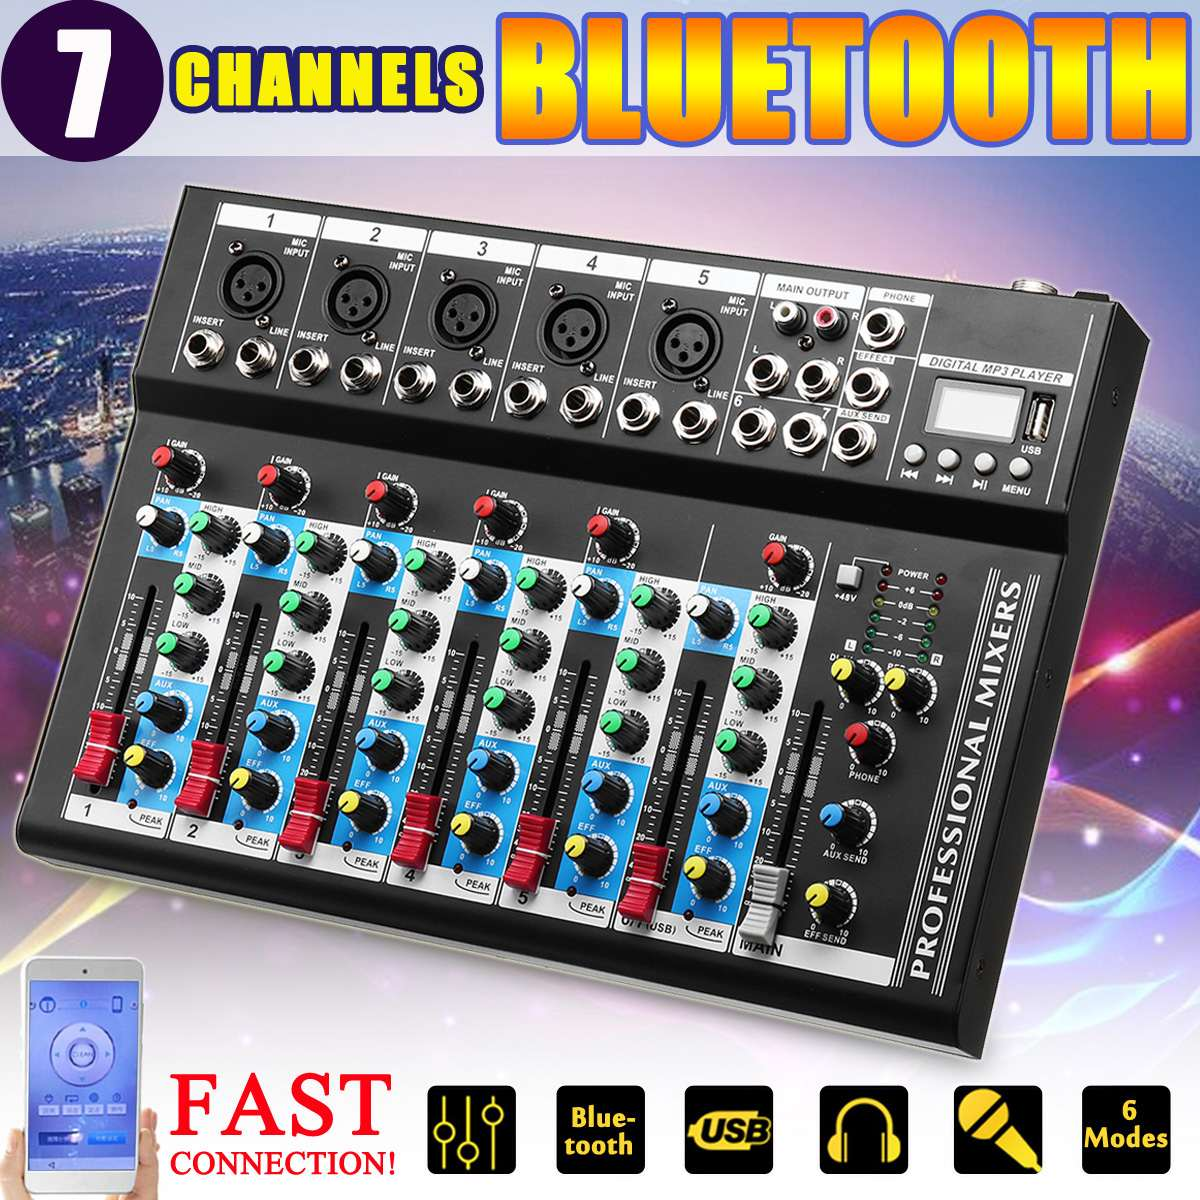 7 Channel USB Digital Karaoke Mixer bluetooth Live Studio Audio Mixing Console Microphone Sound Card for DJ Wedding Party KTV7 Channel USB Digital Karaoke Mixer bluetooth Live Studio Audio Mixing Console Microphone Sound Card for DJ Wedding Party KTV